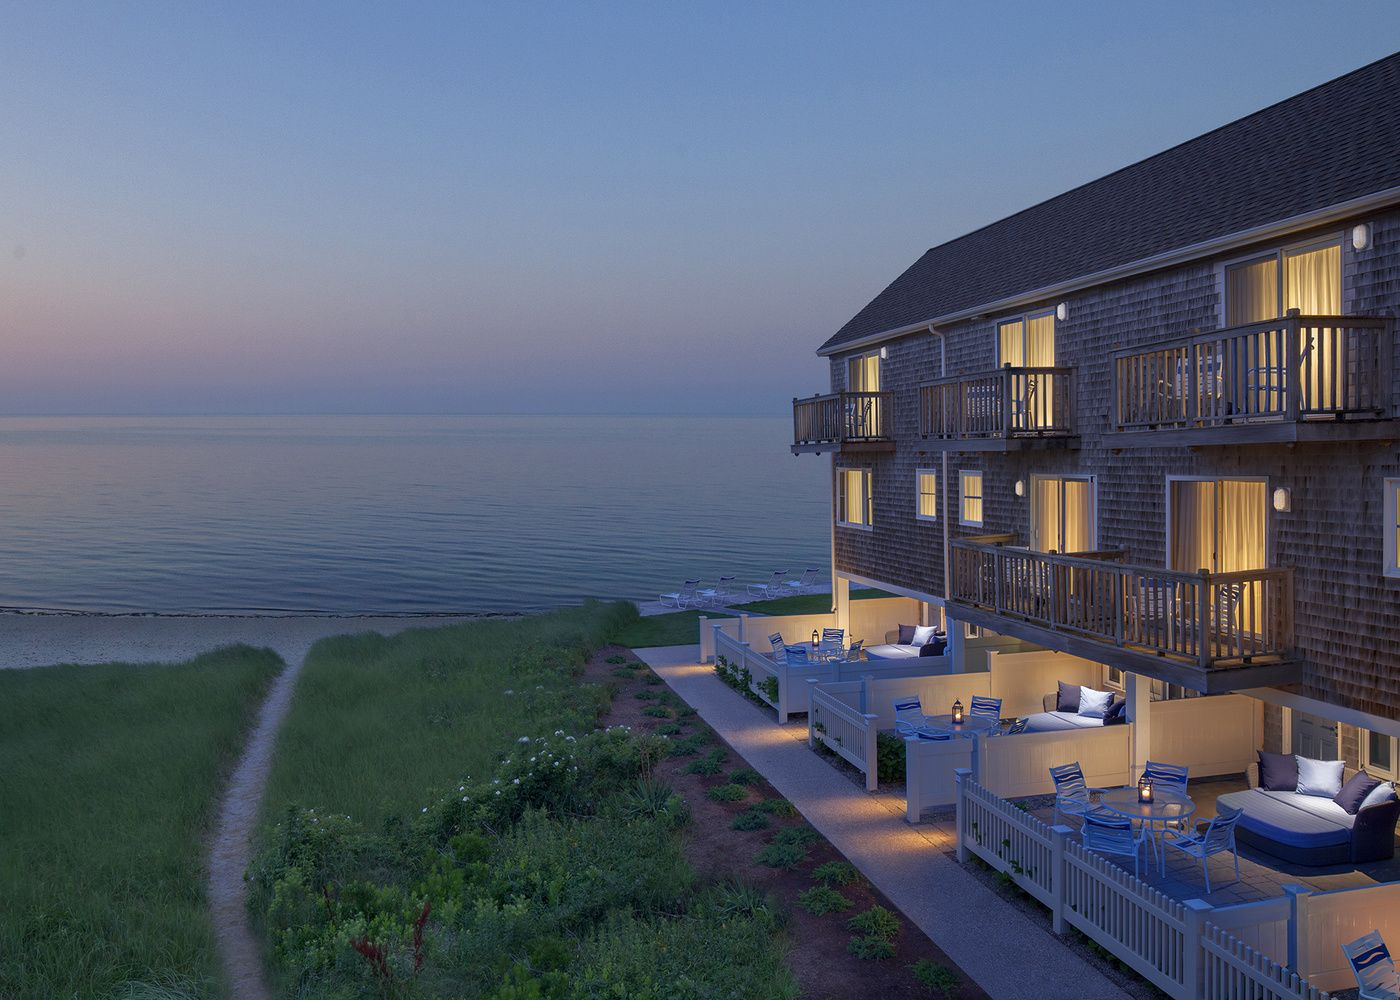 Discover Our Oceanfront Paradise With Amazing Views Luxurious Rooms And Amenities For The Perfect Family Vacation South Yarmouth Ma Hotel Photos